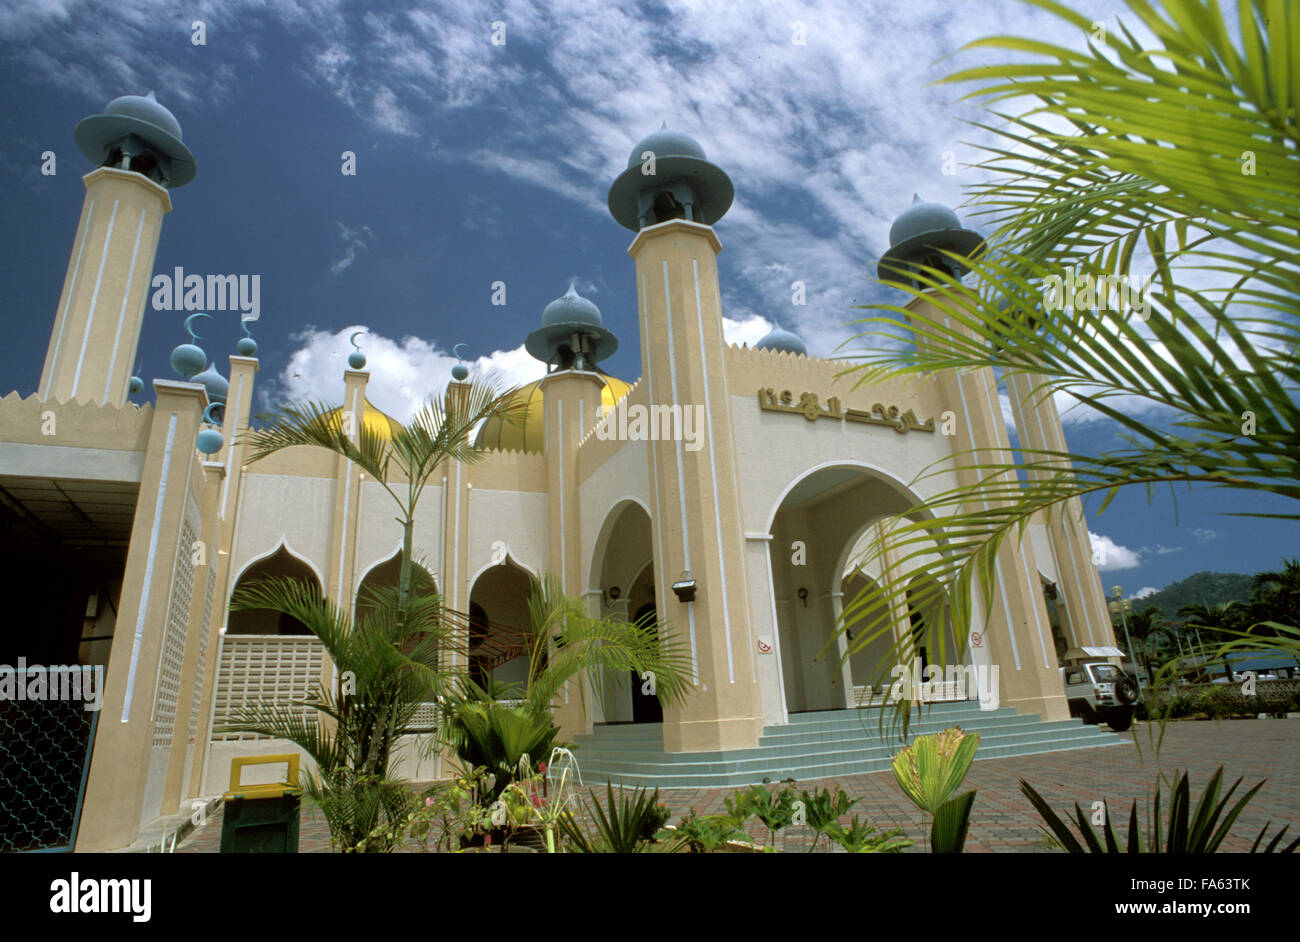 Al-Hana Mosque in Langkawi, Malaysia. Al-Hana Mosque is billed as the largest and most popular mosque in Langkawi. - Stock Image